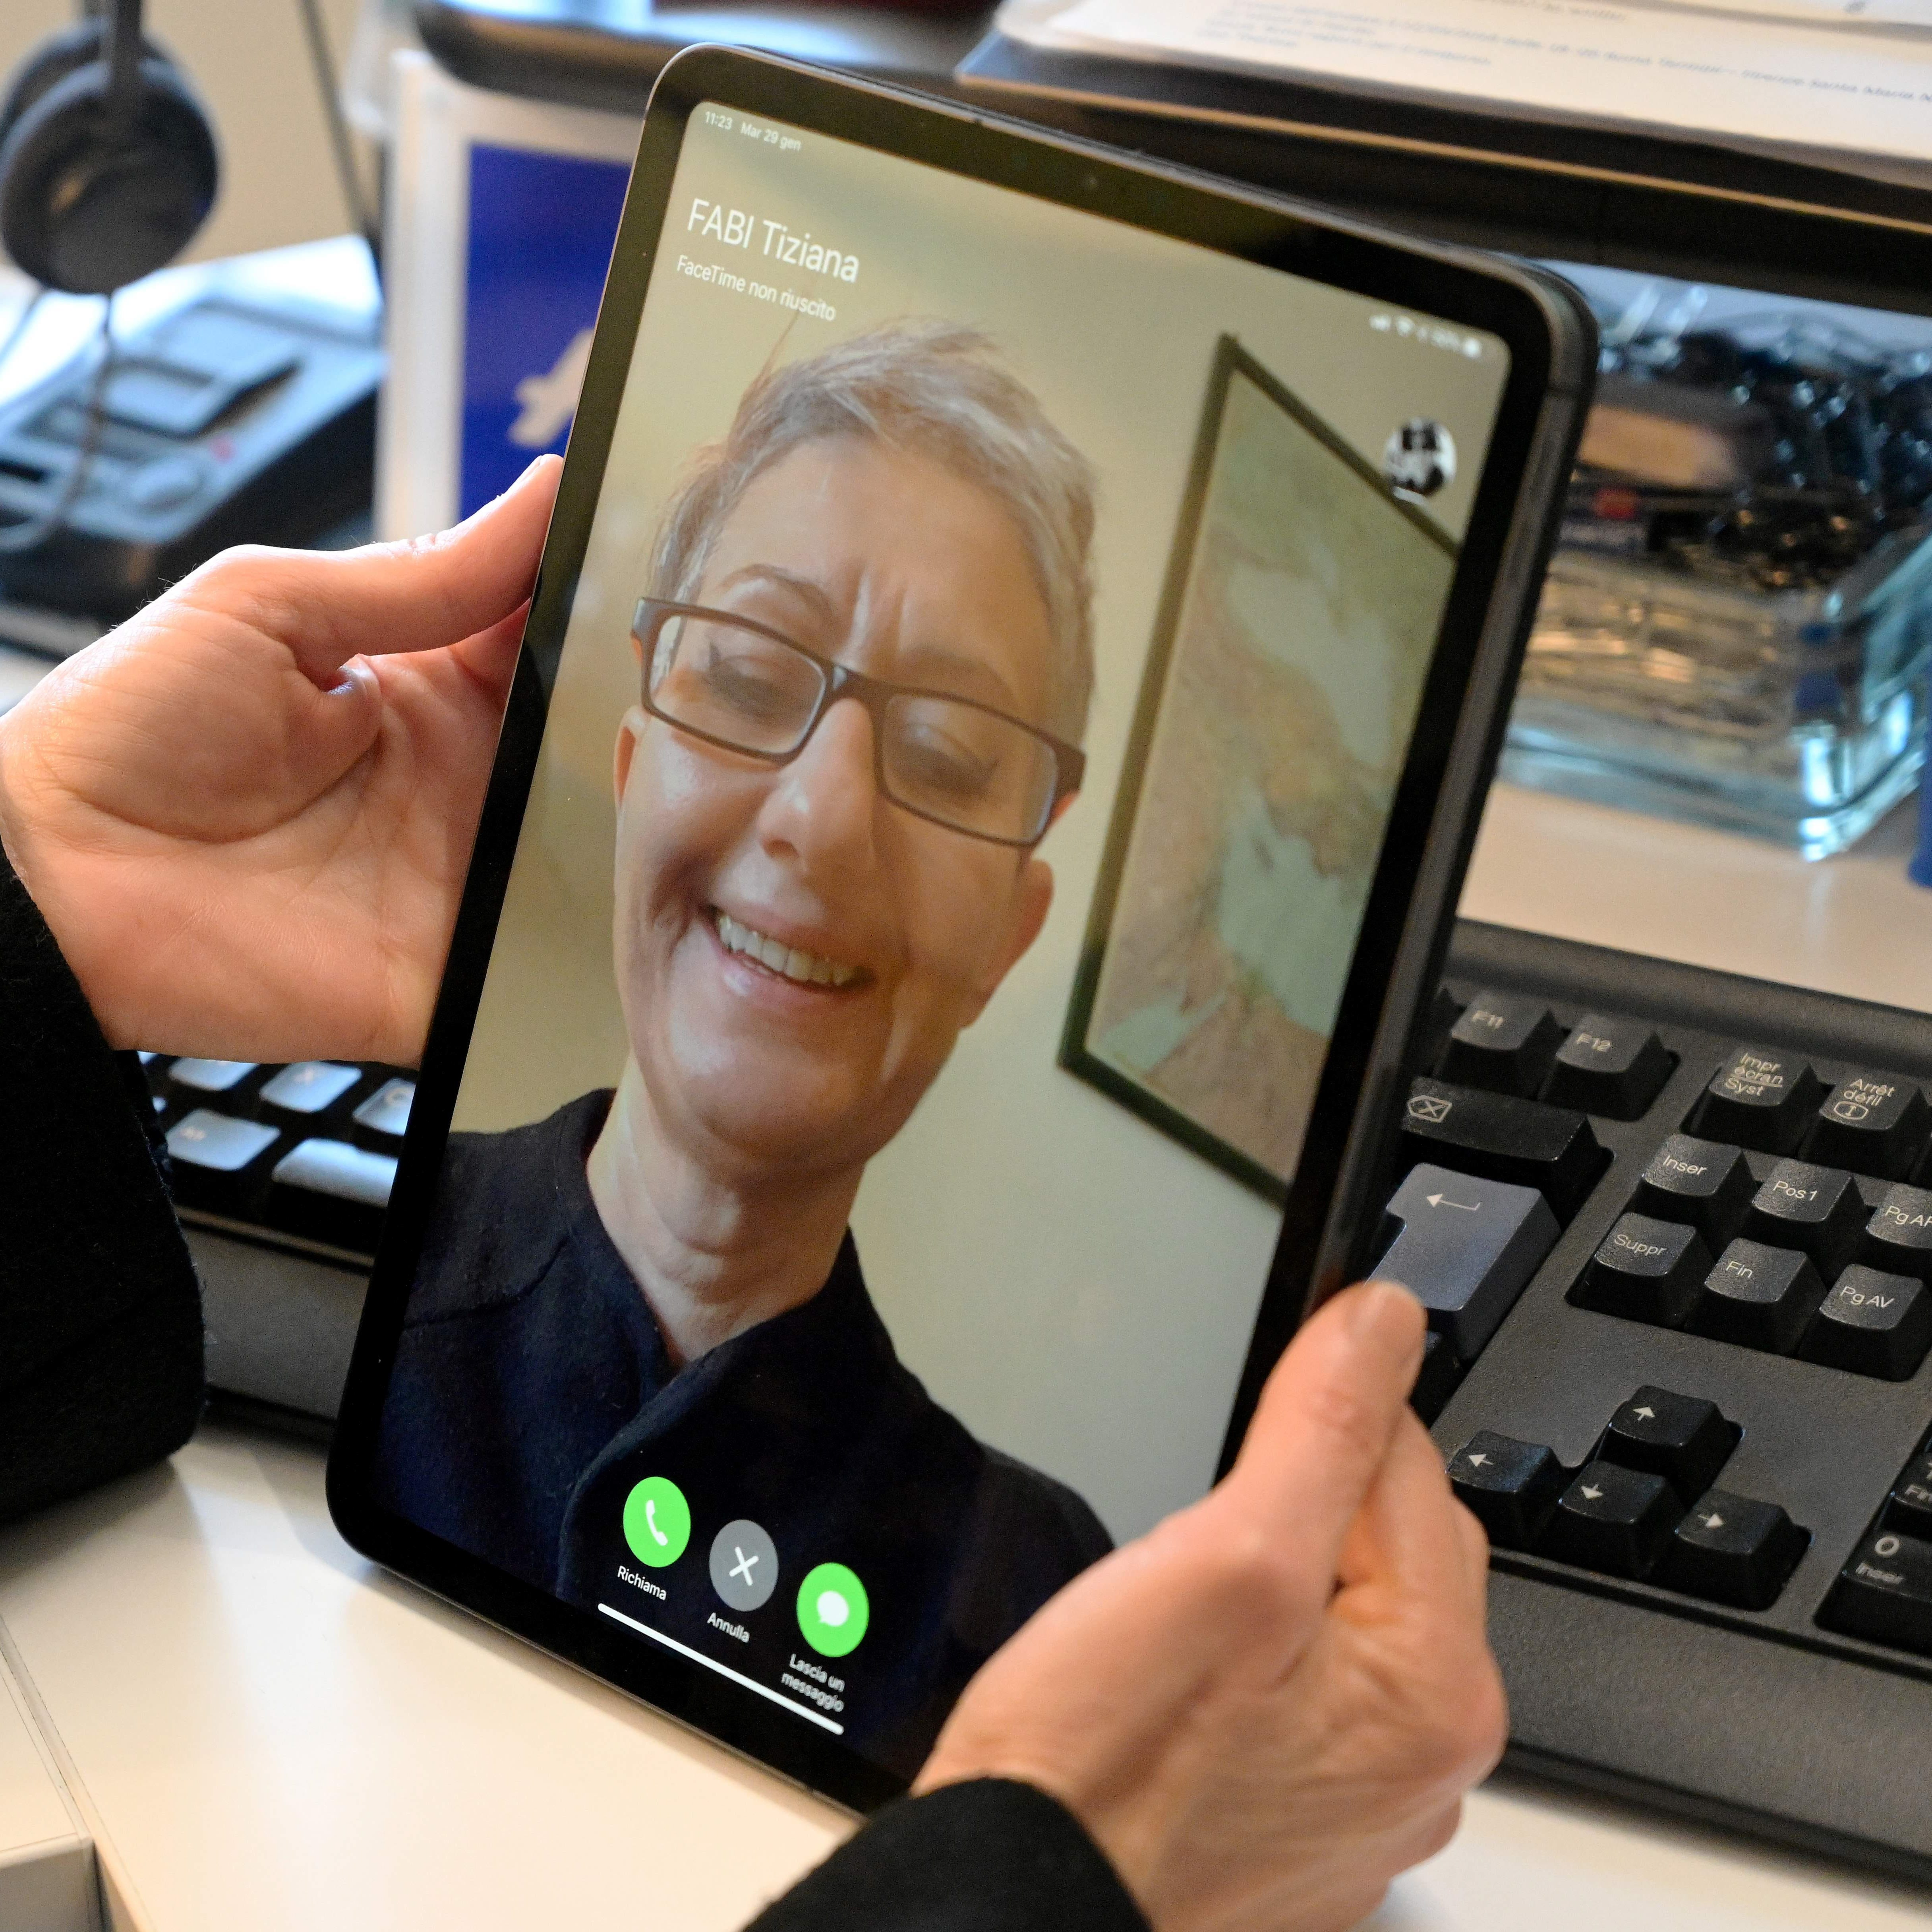 Fix coming for Apple's FaceTime